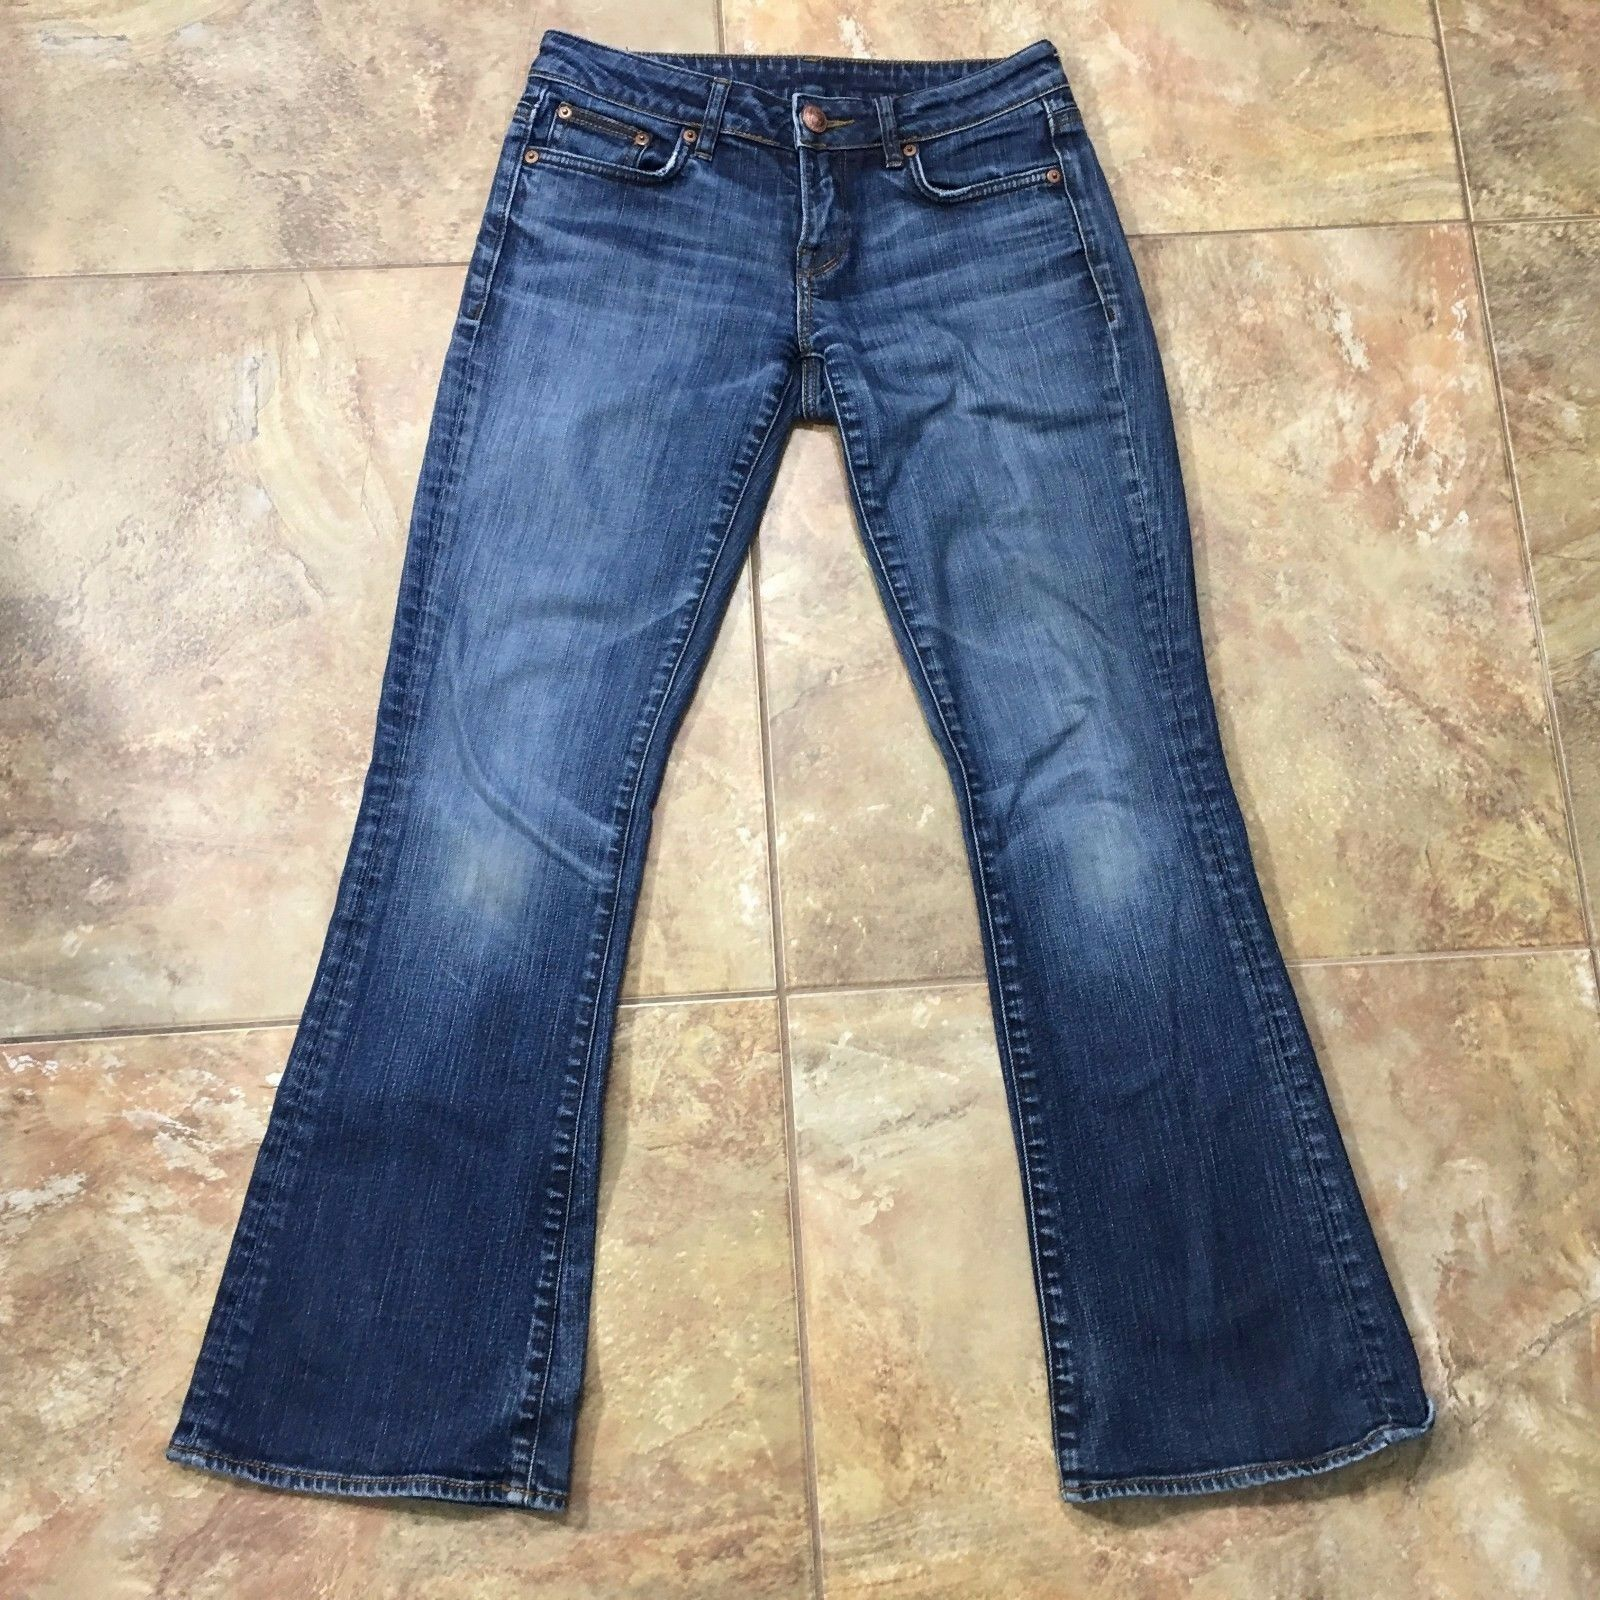 BUFFALO DAVID BITTON Felow Mid Rise Stretch Flare Jeans Size 27x29